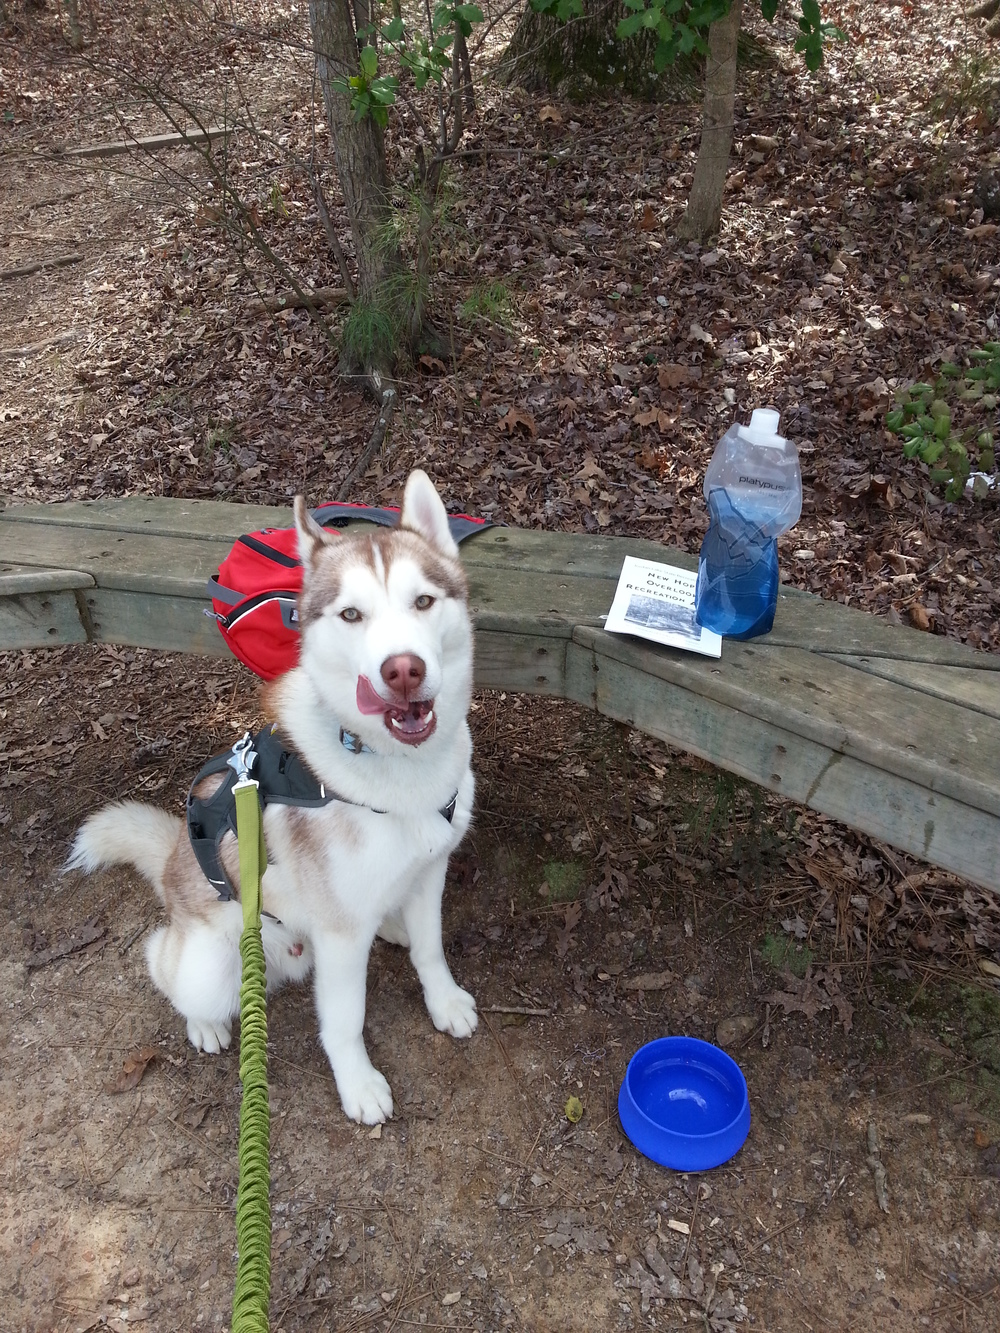 At the bench by the overlook: Ryder licking his chops after a quick drink of water